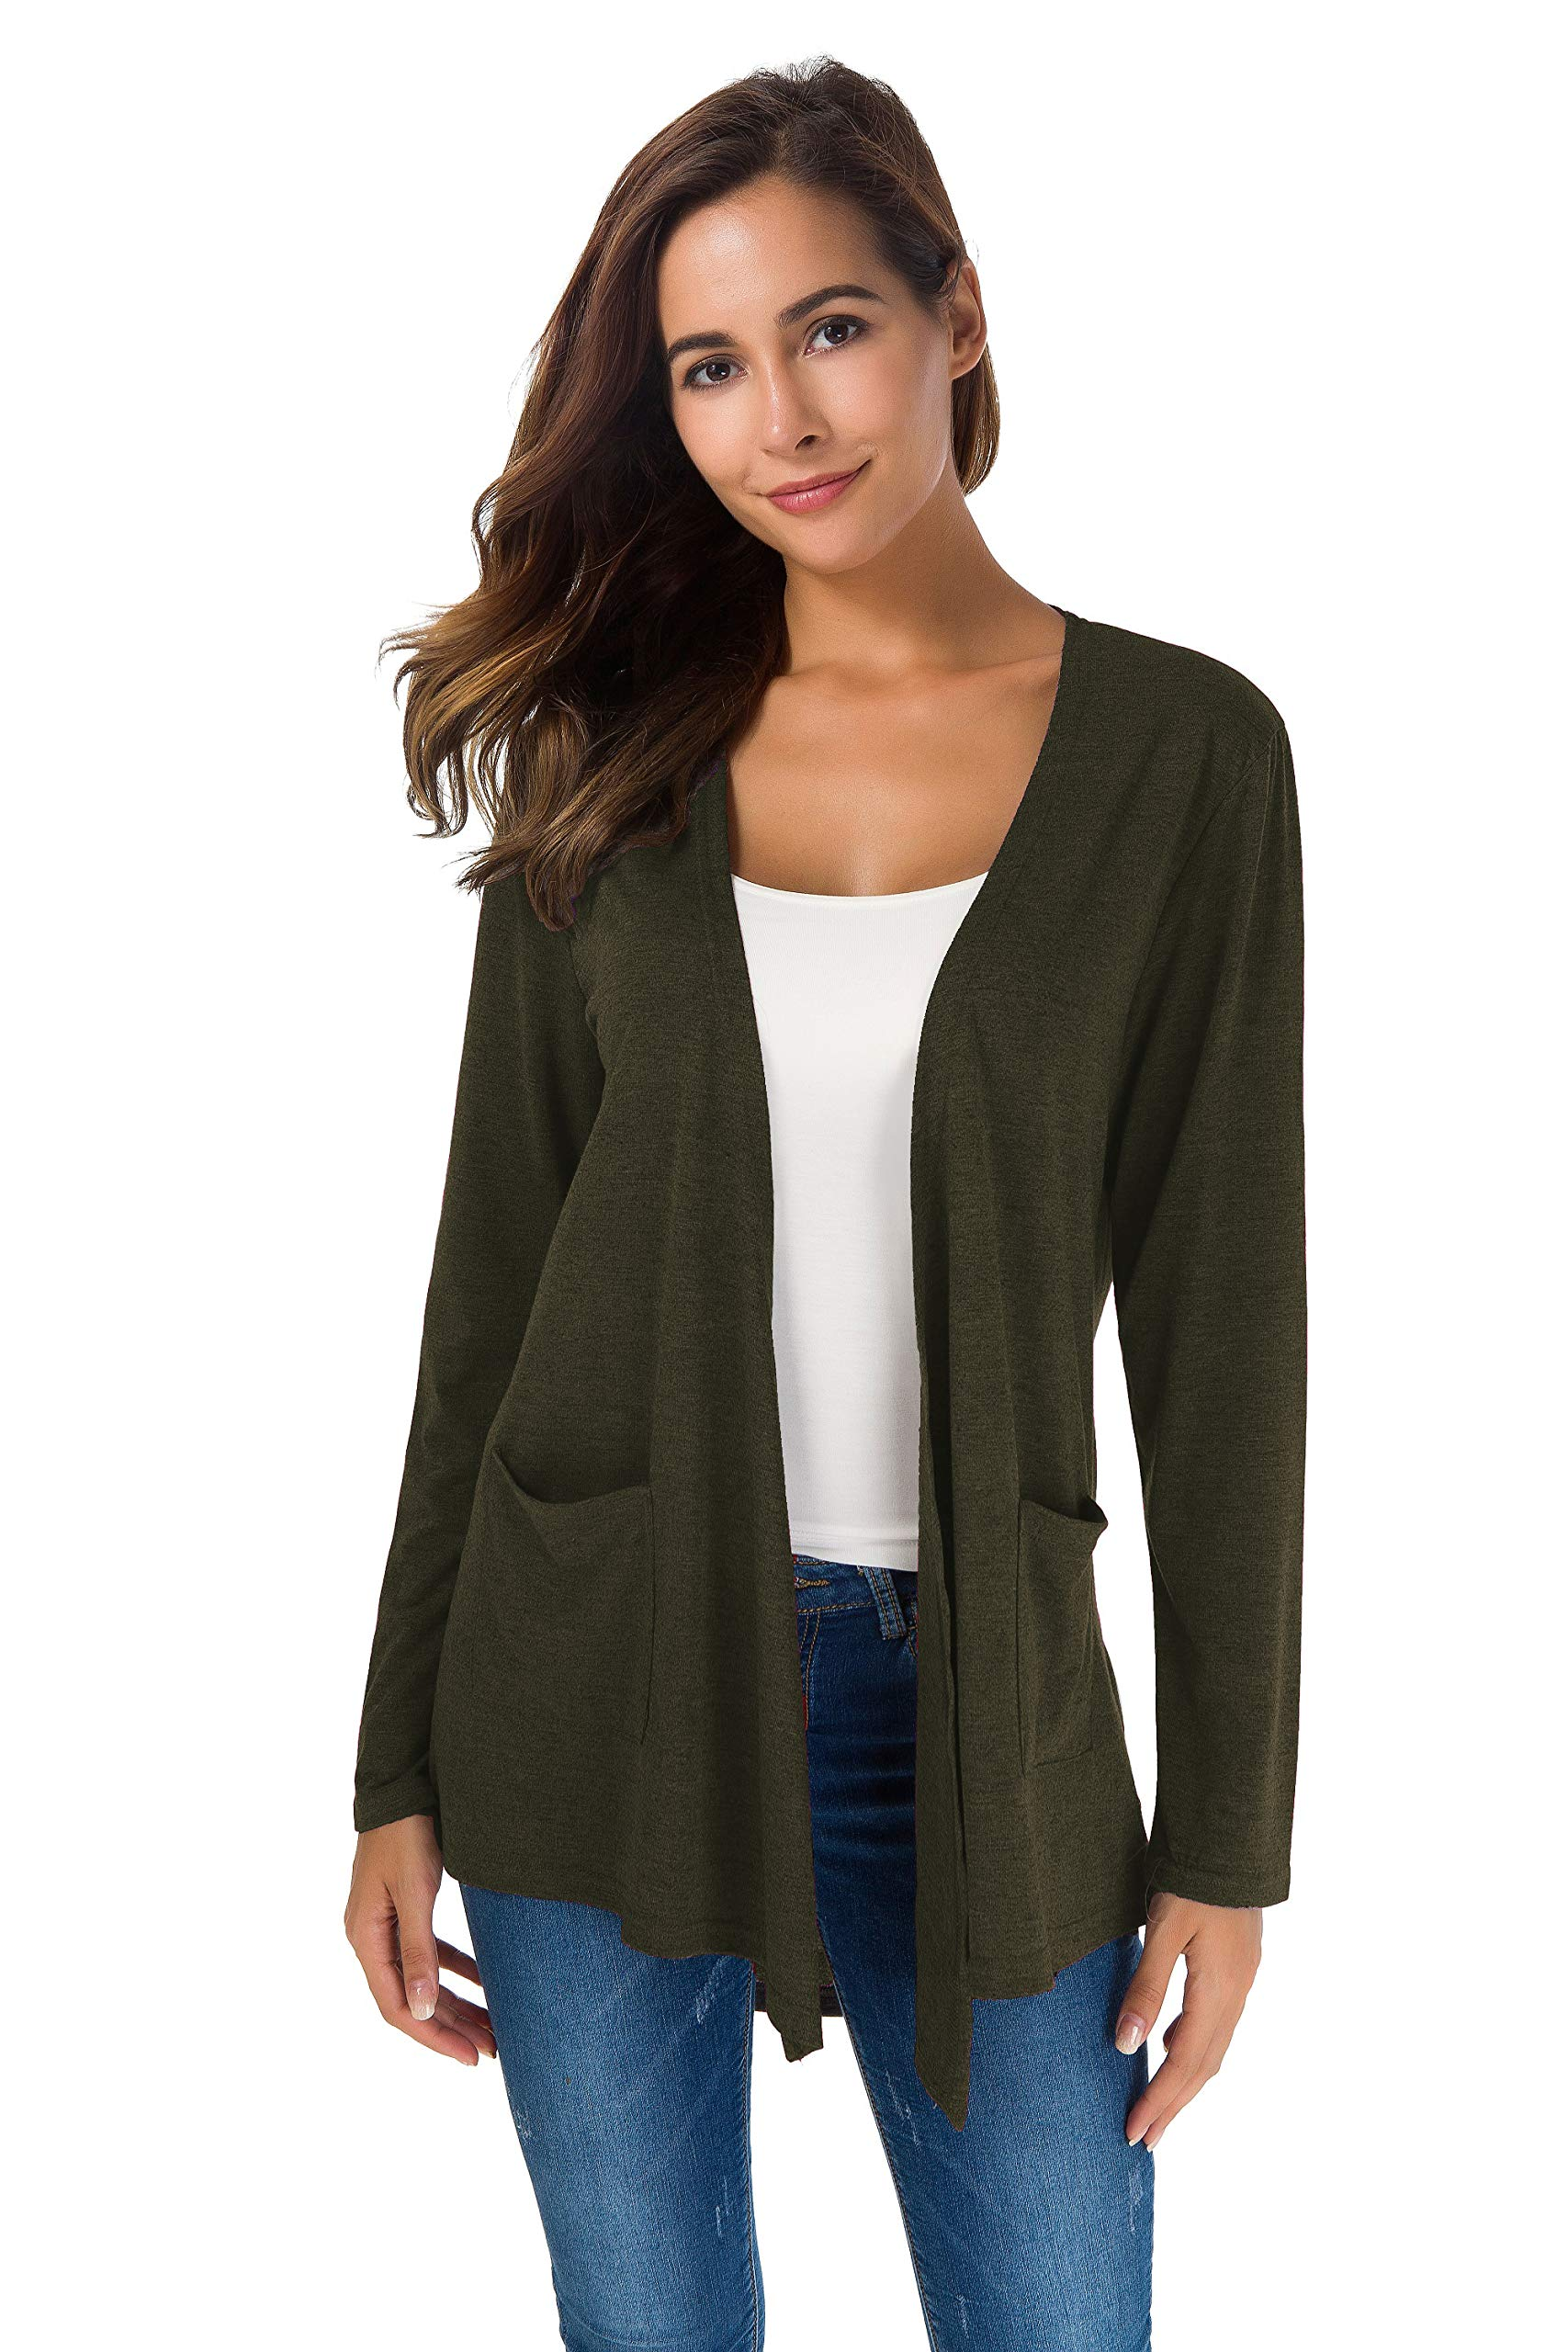 TownCat Women's Loose Casual Long Sleeved Open Front Breathable Cardigans with Pocket (Green1, M)